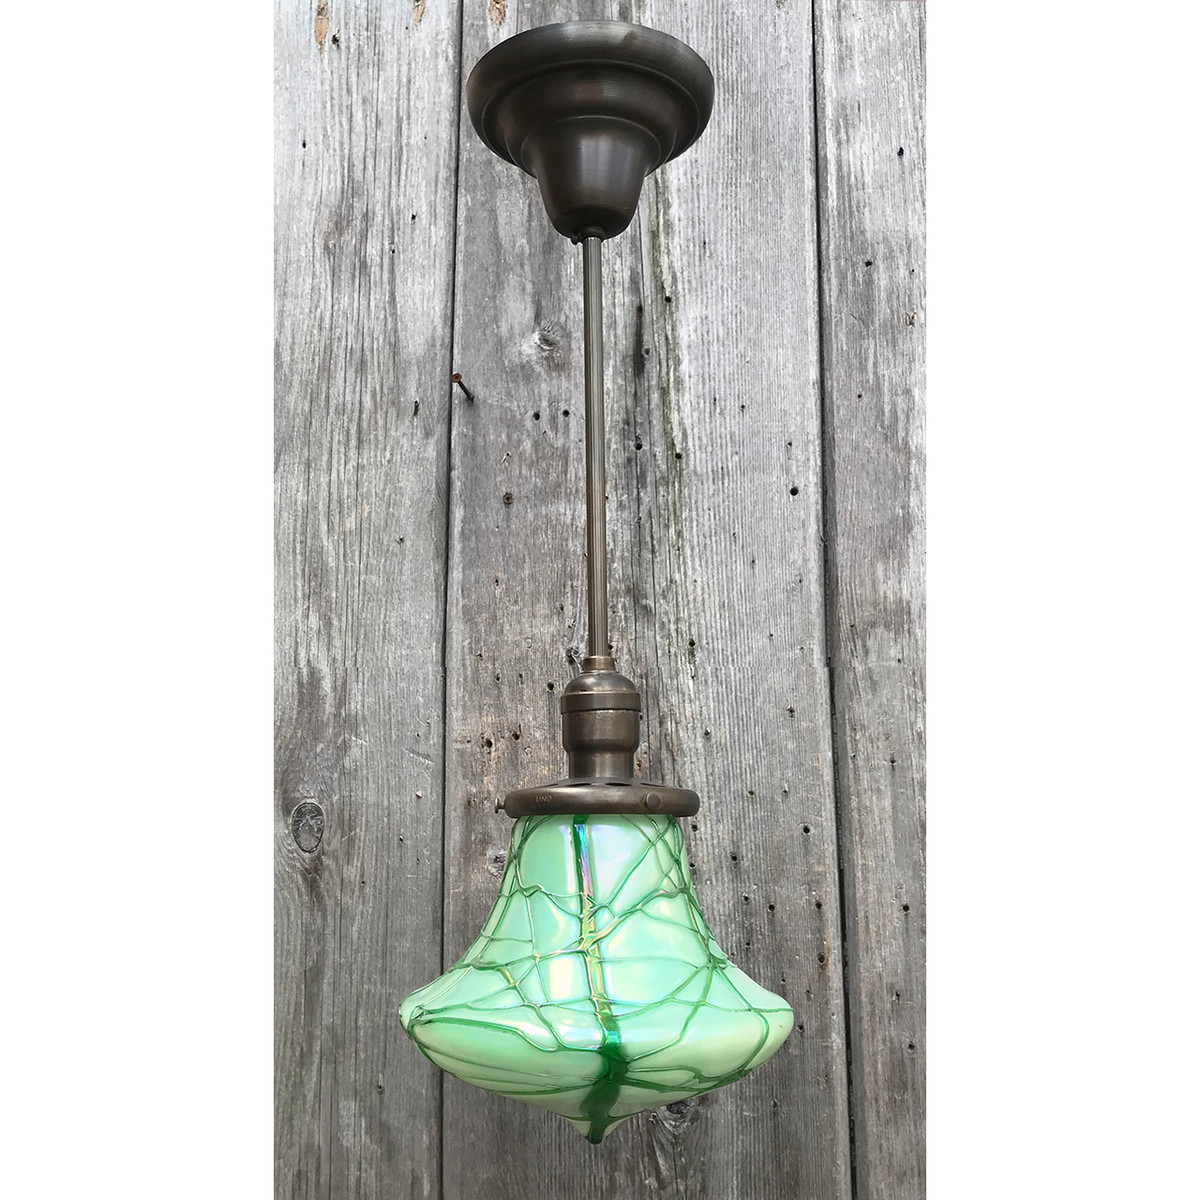 L14288 - Antique  Pendant Fixture with Art Glass